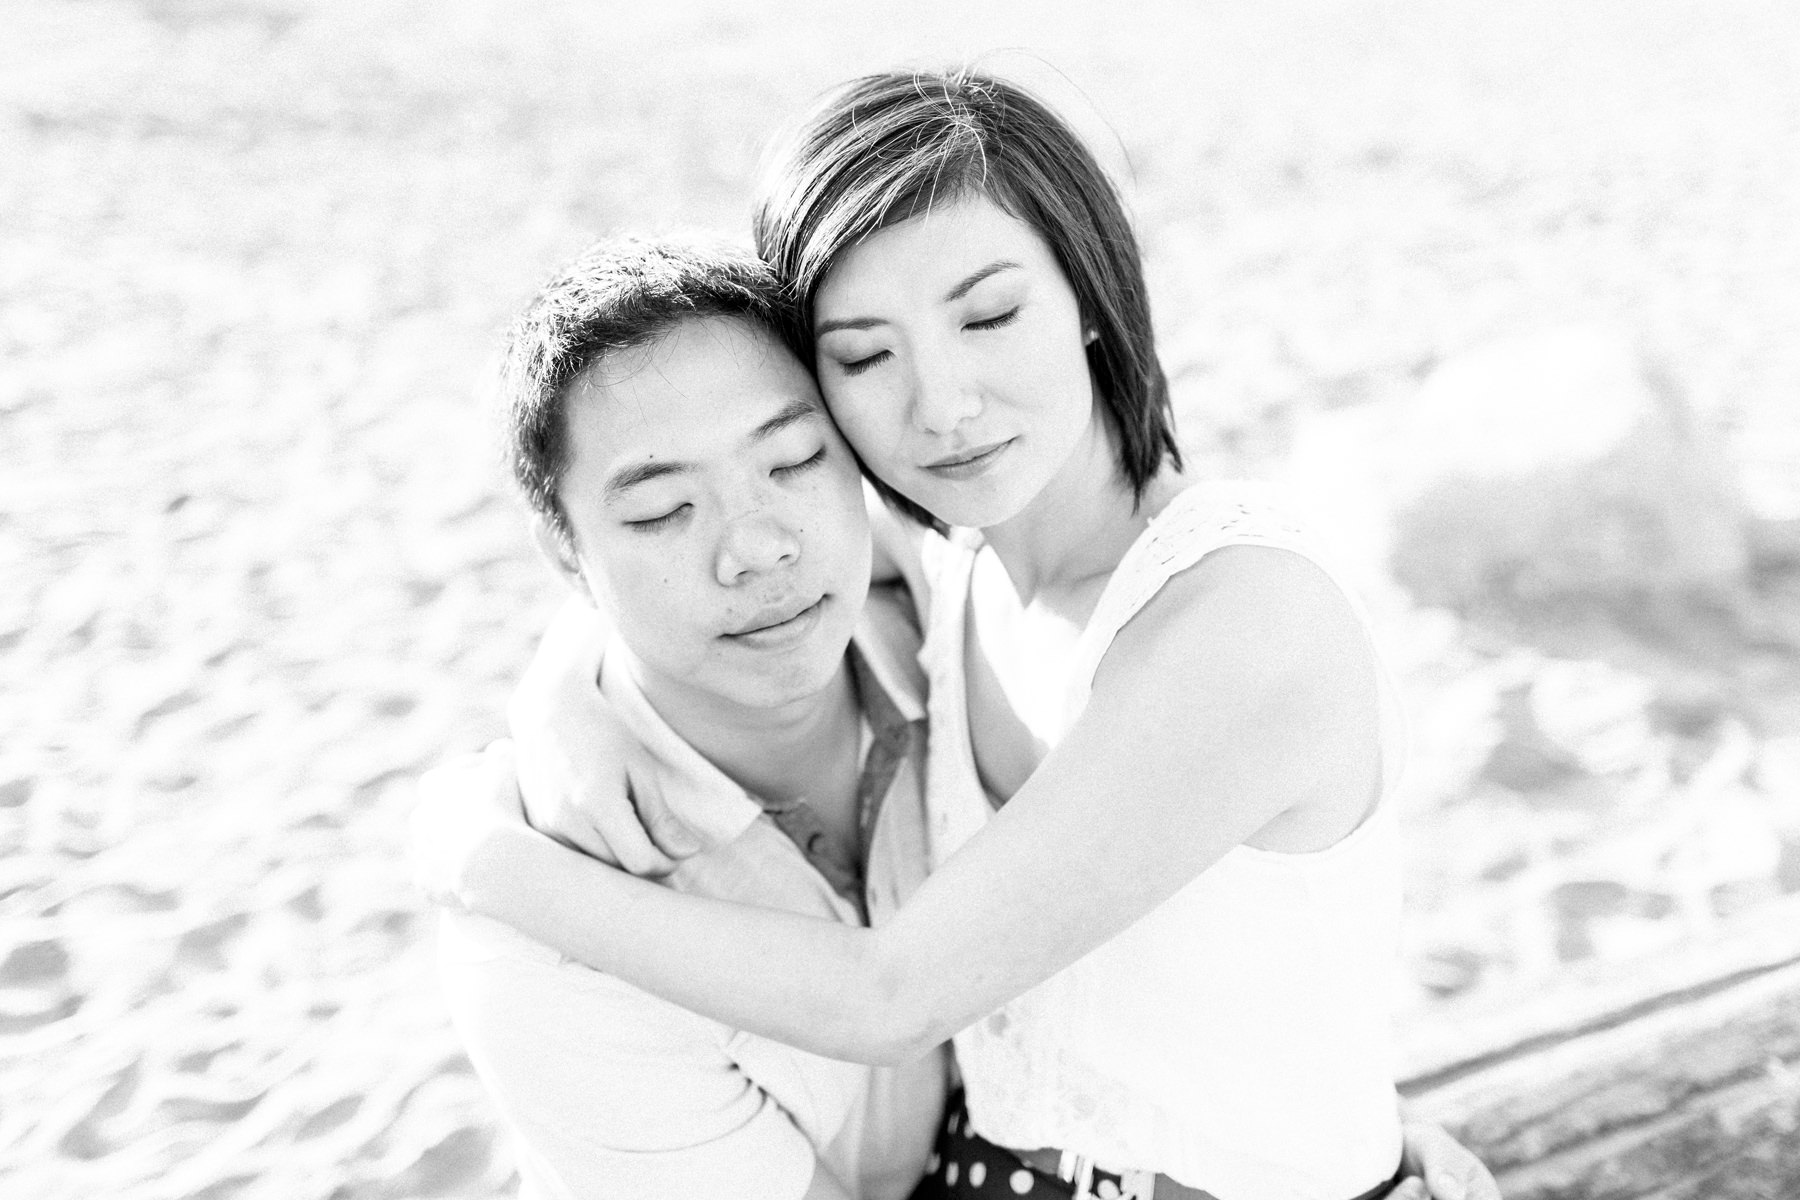 Spanish Banks Pre Wedding Session